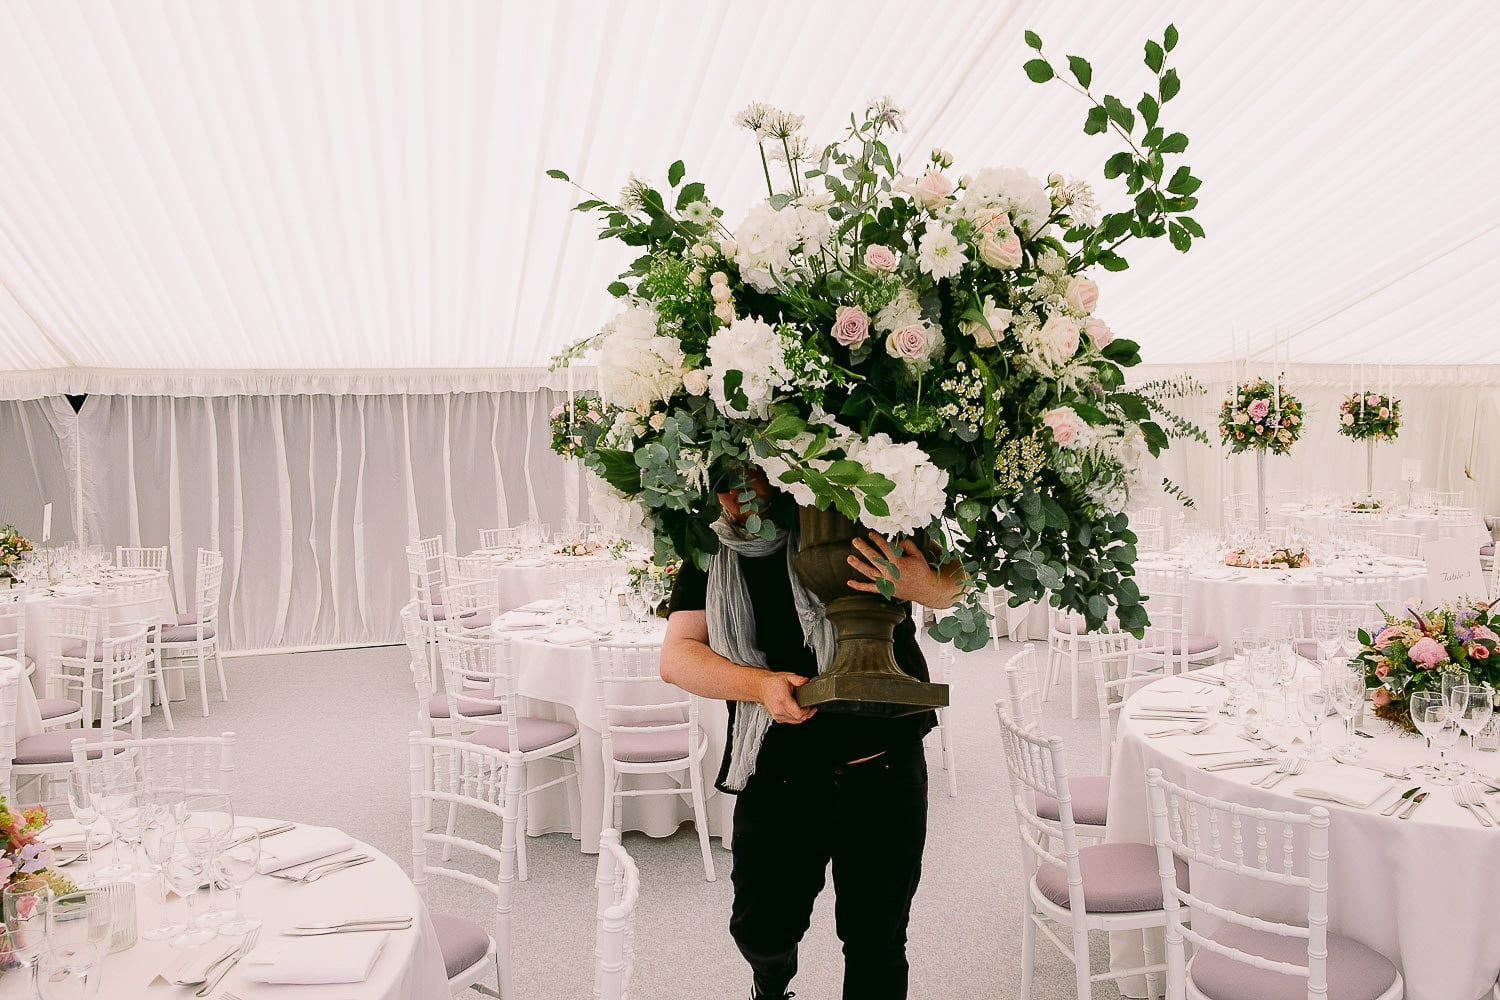 The flowers arrive into the marquee